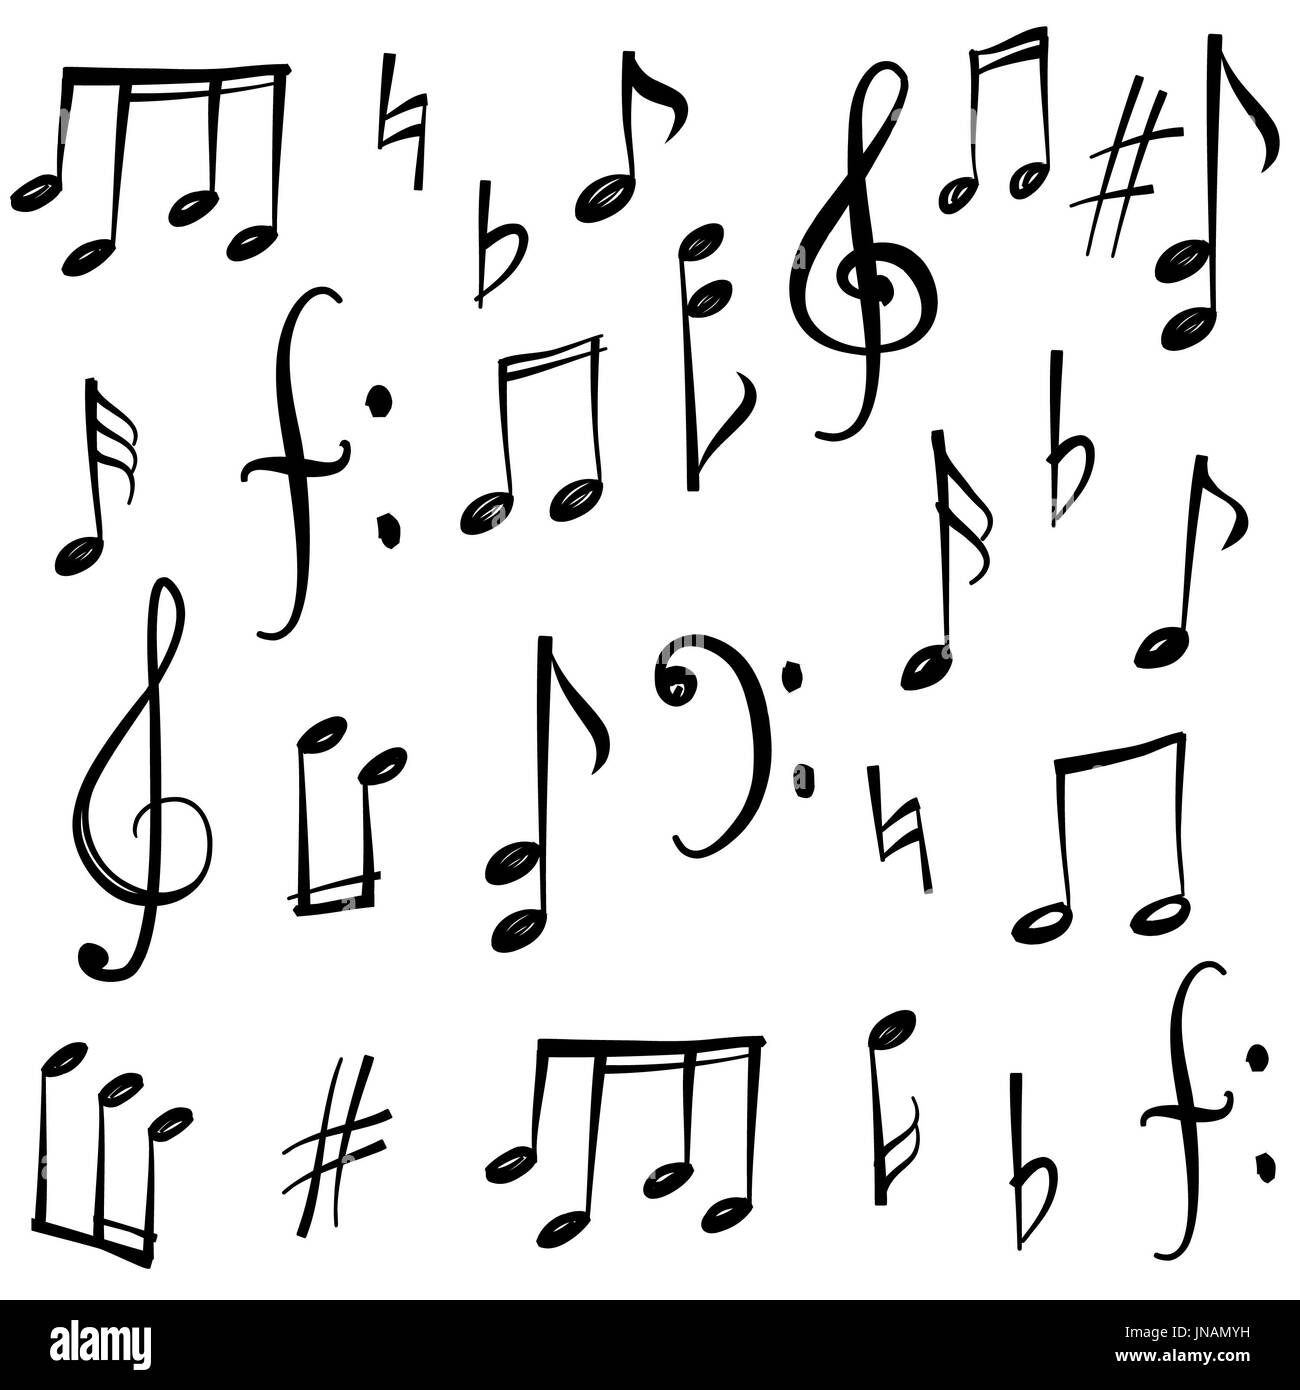 Music notes black and white stock photos images alamy music notes and signs set hand drawn music symbol sketch collection stock image biocorpaavc